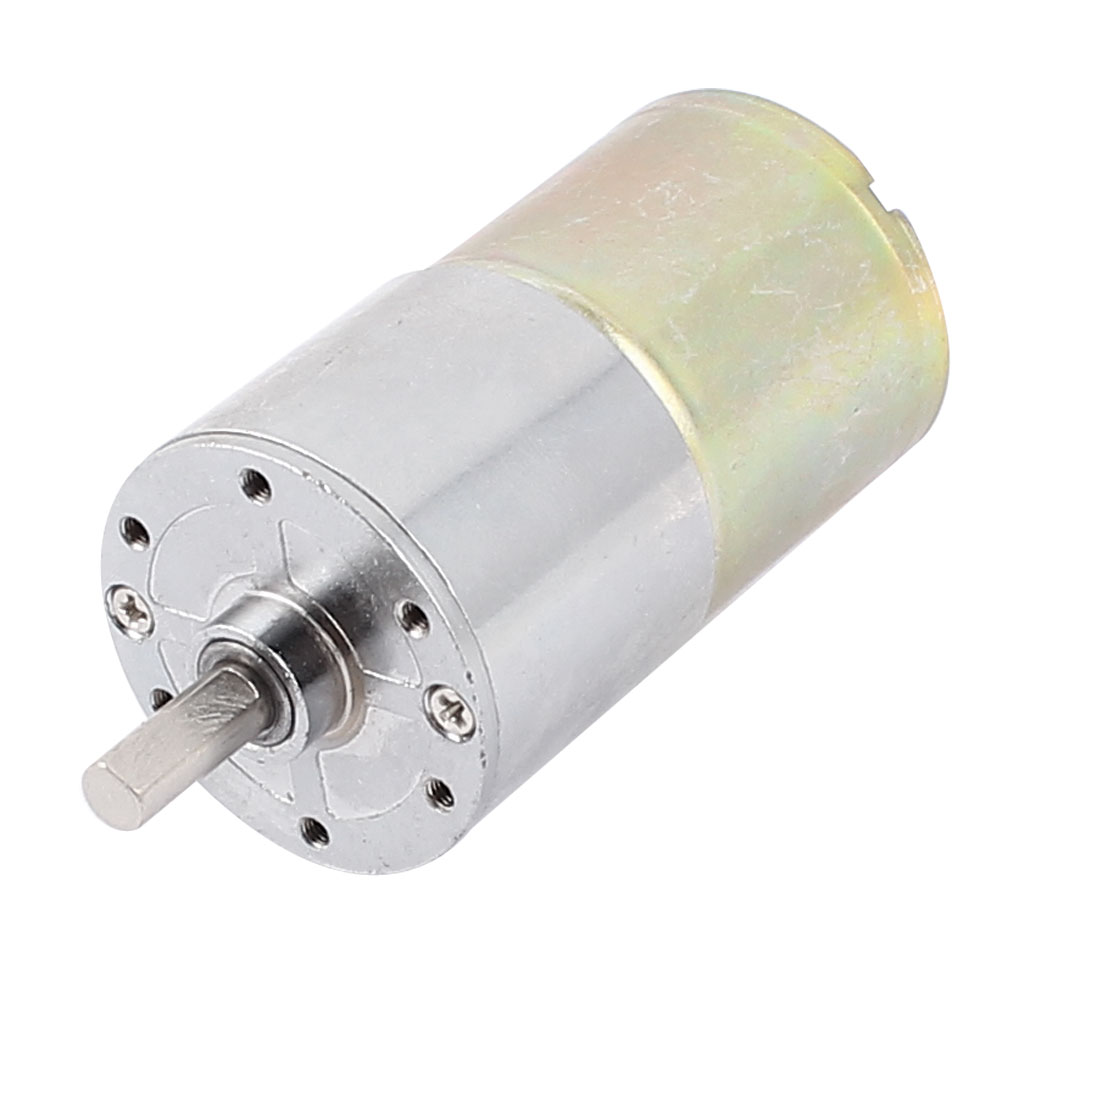 DC 12V 30RPM 6mm Dia Shaft Replacement Gear Box Speed Reducer Electric Motor